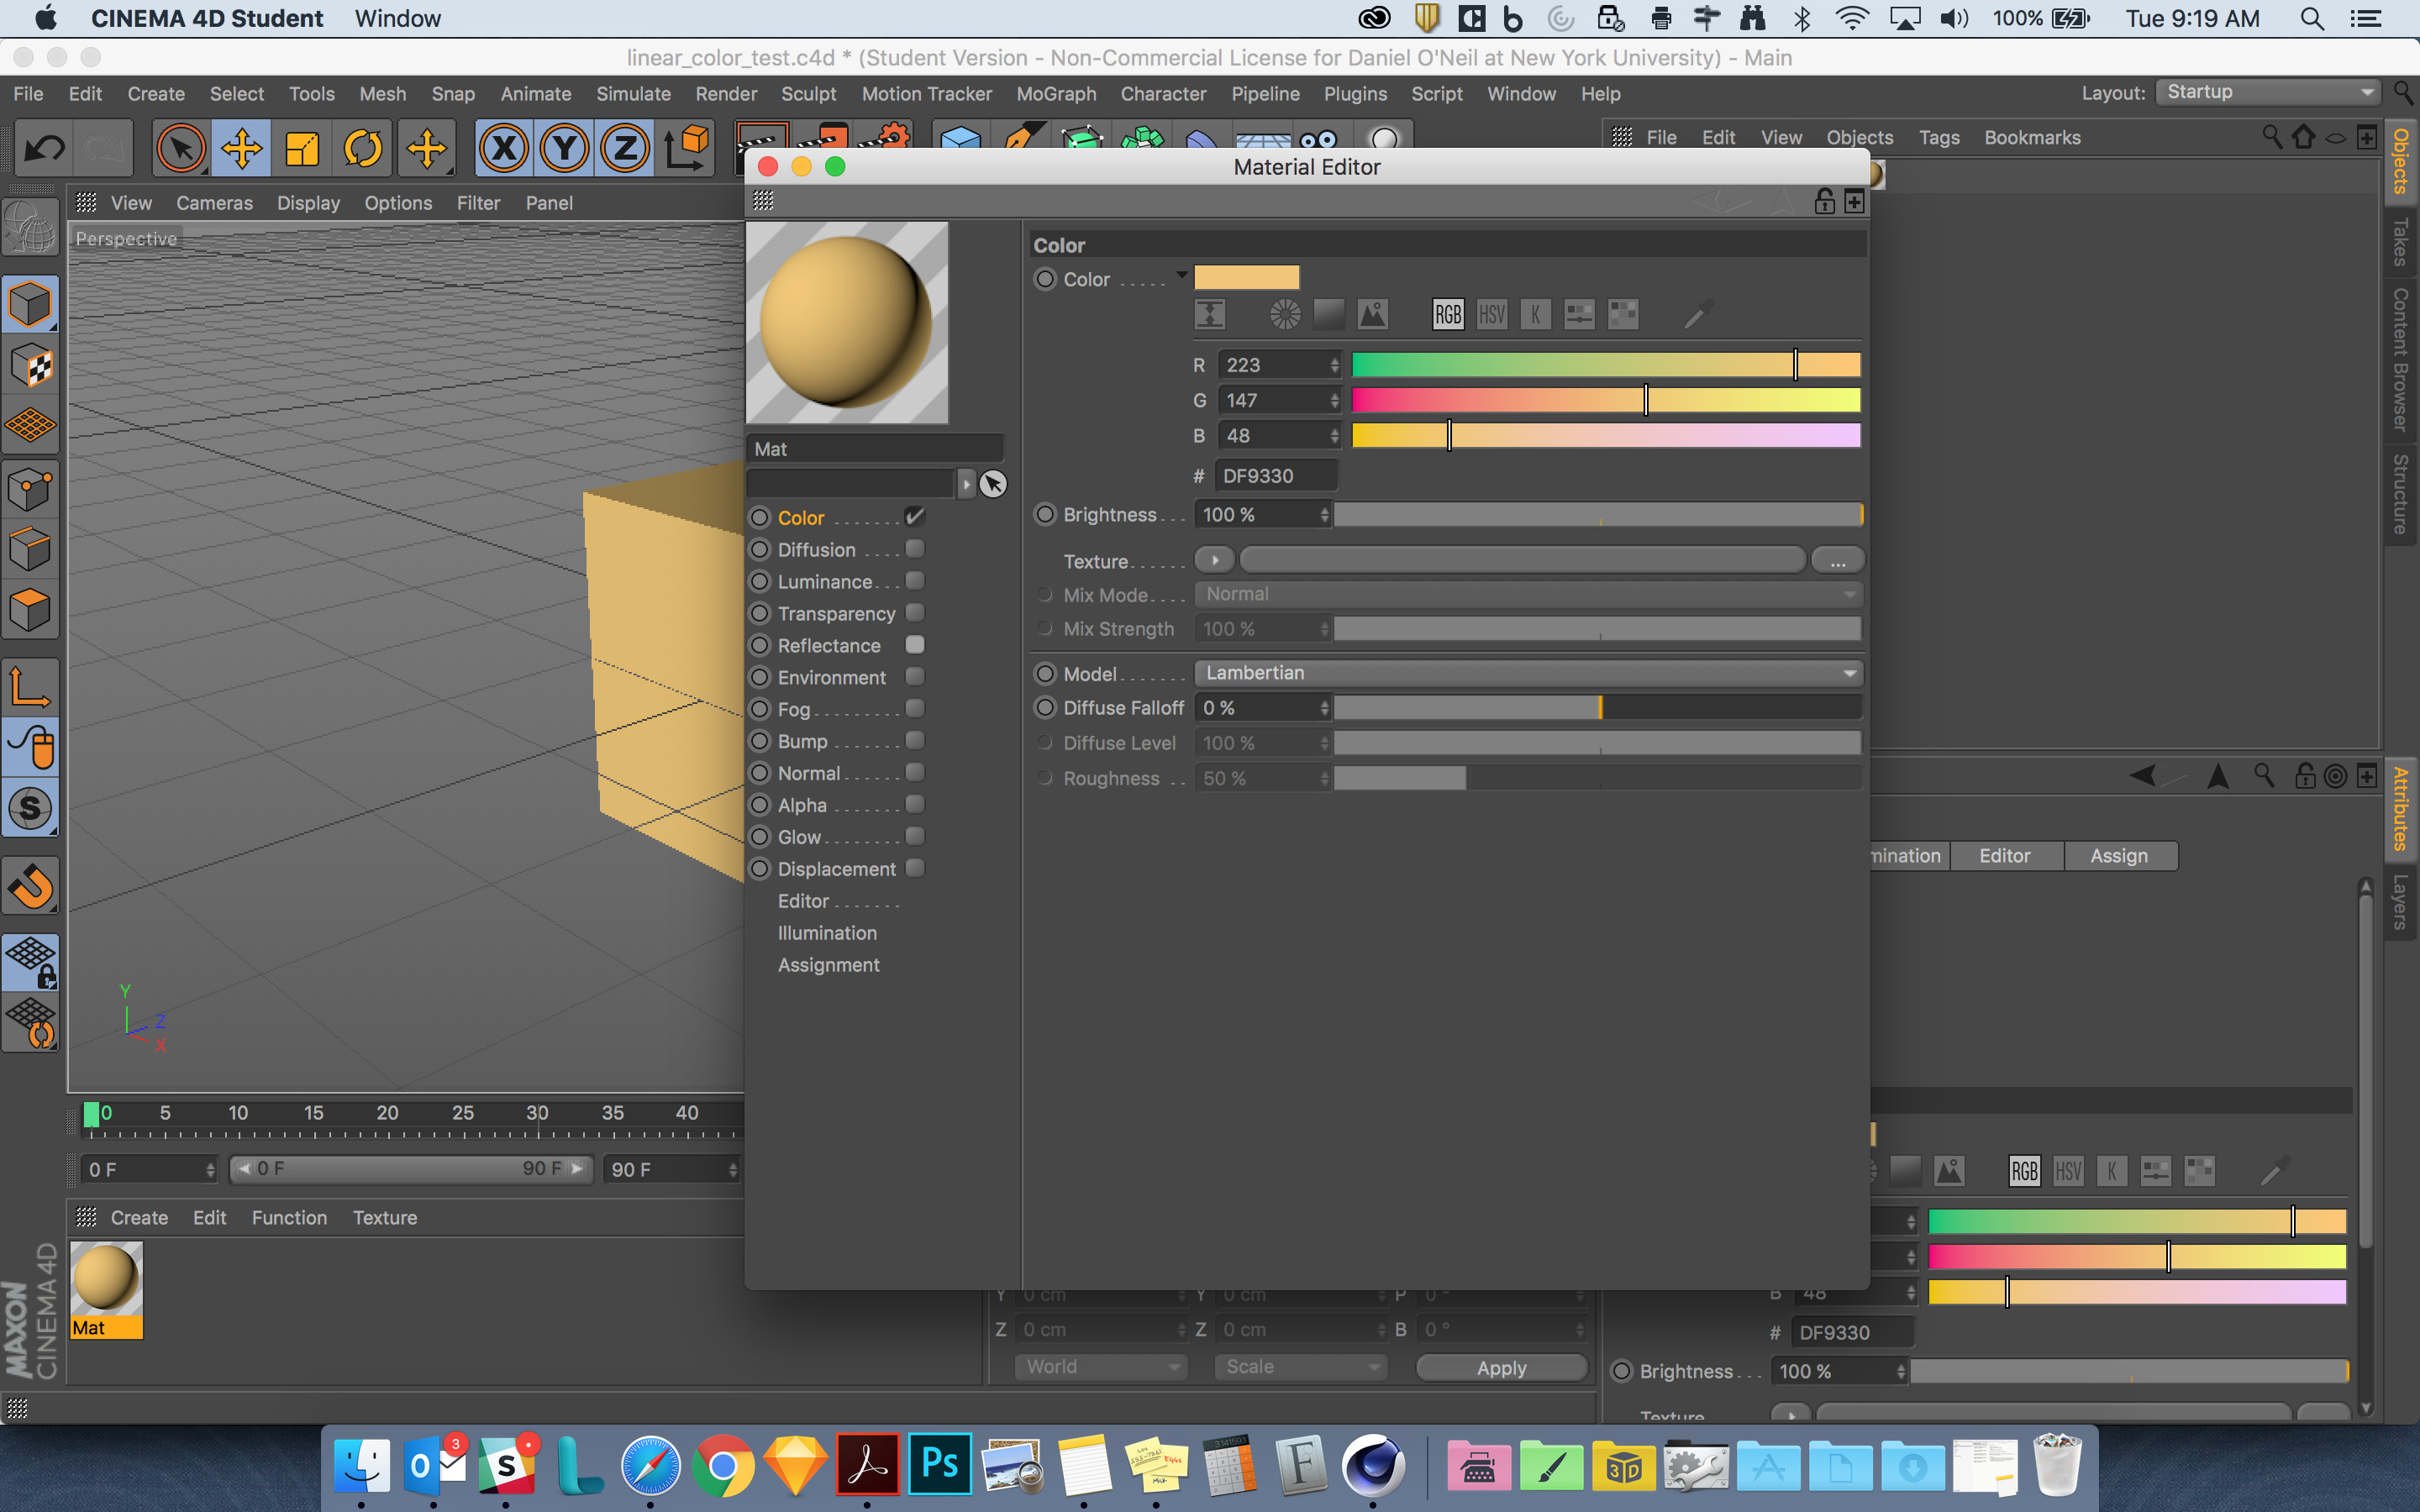 Colors not importing correctly from Cinema 4D - Bugs - Sketchfab Forum